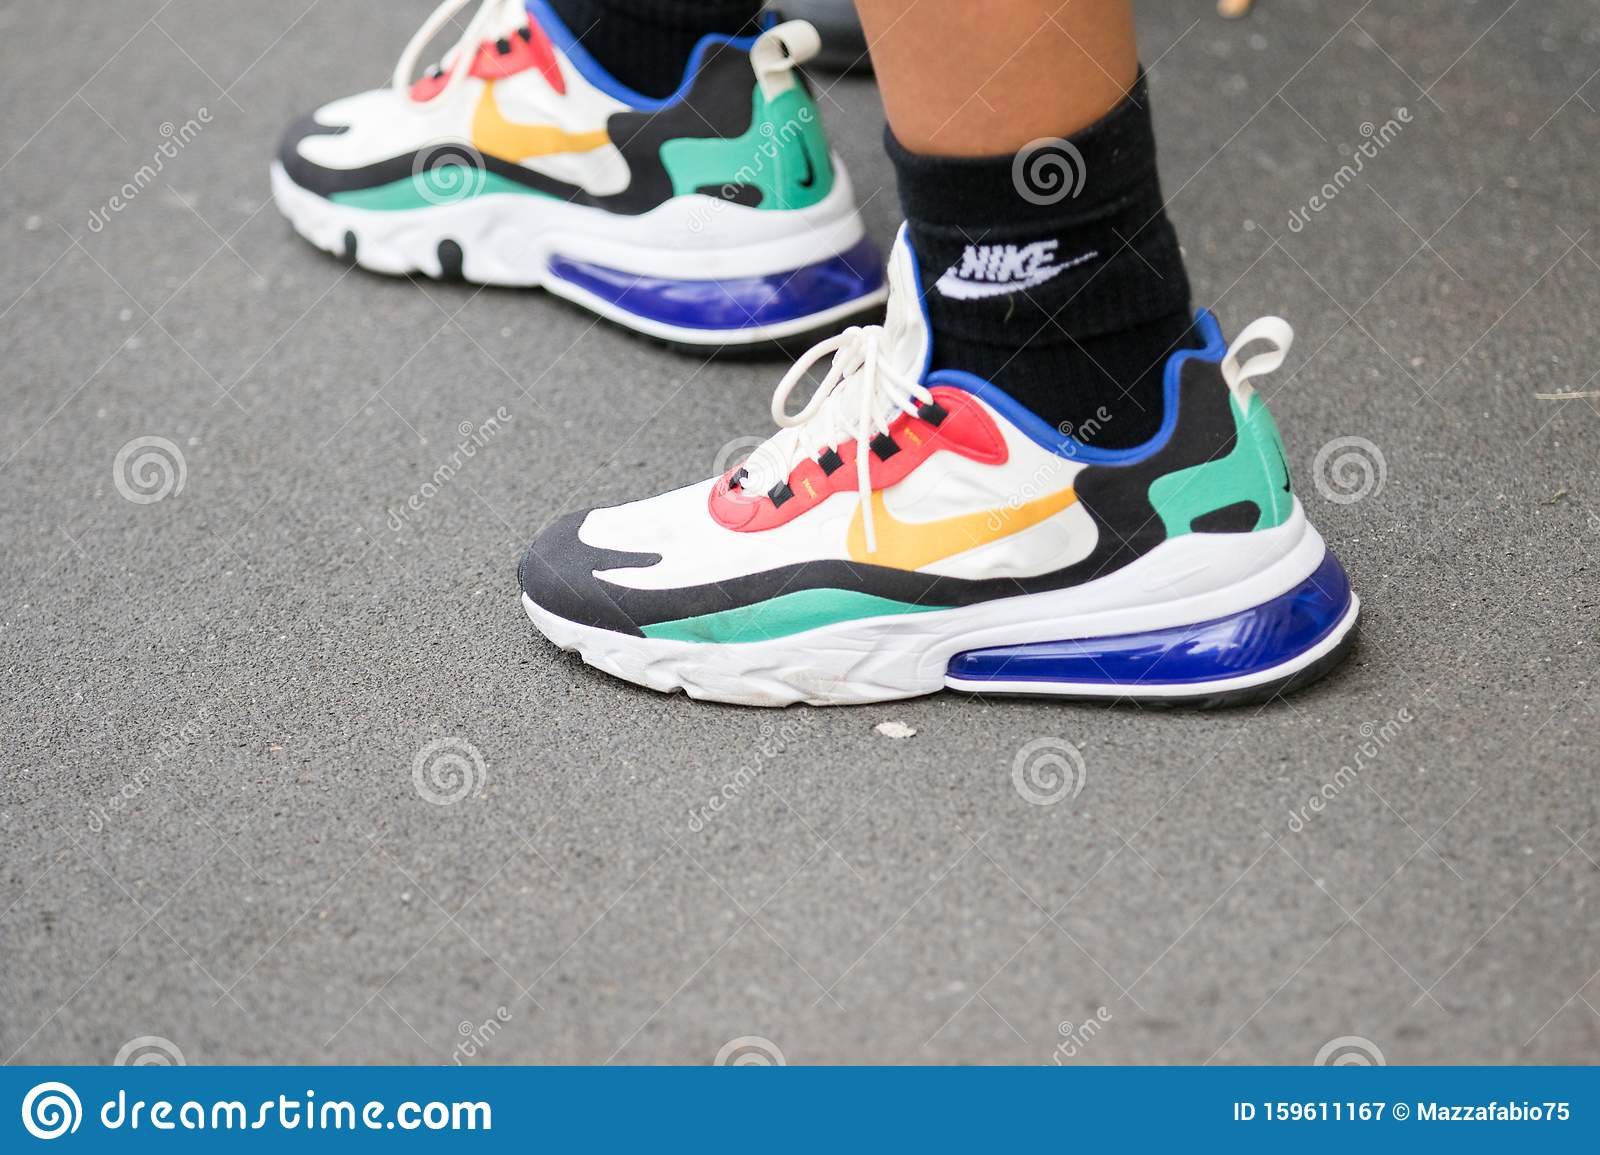 Colorful Nike Sneakers With Black Socks